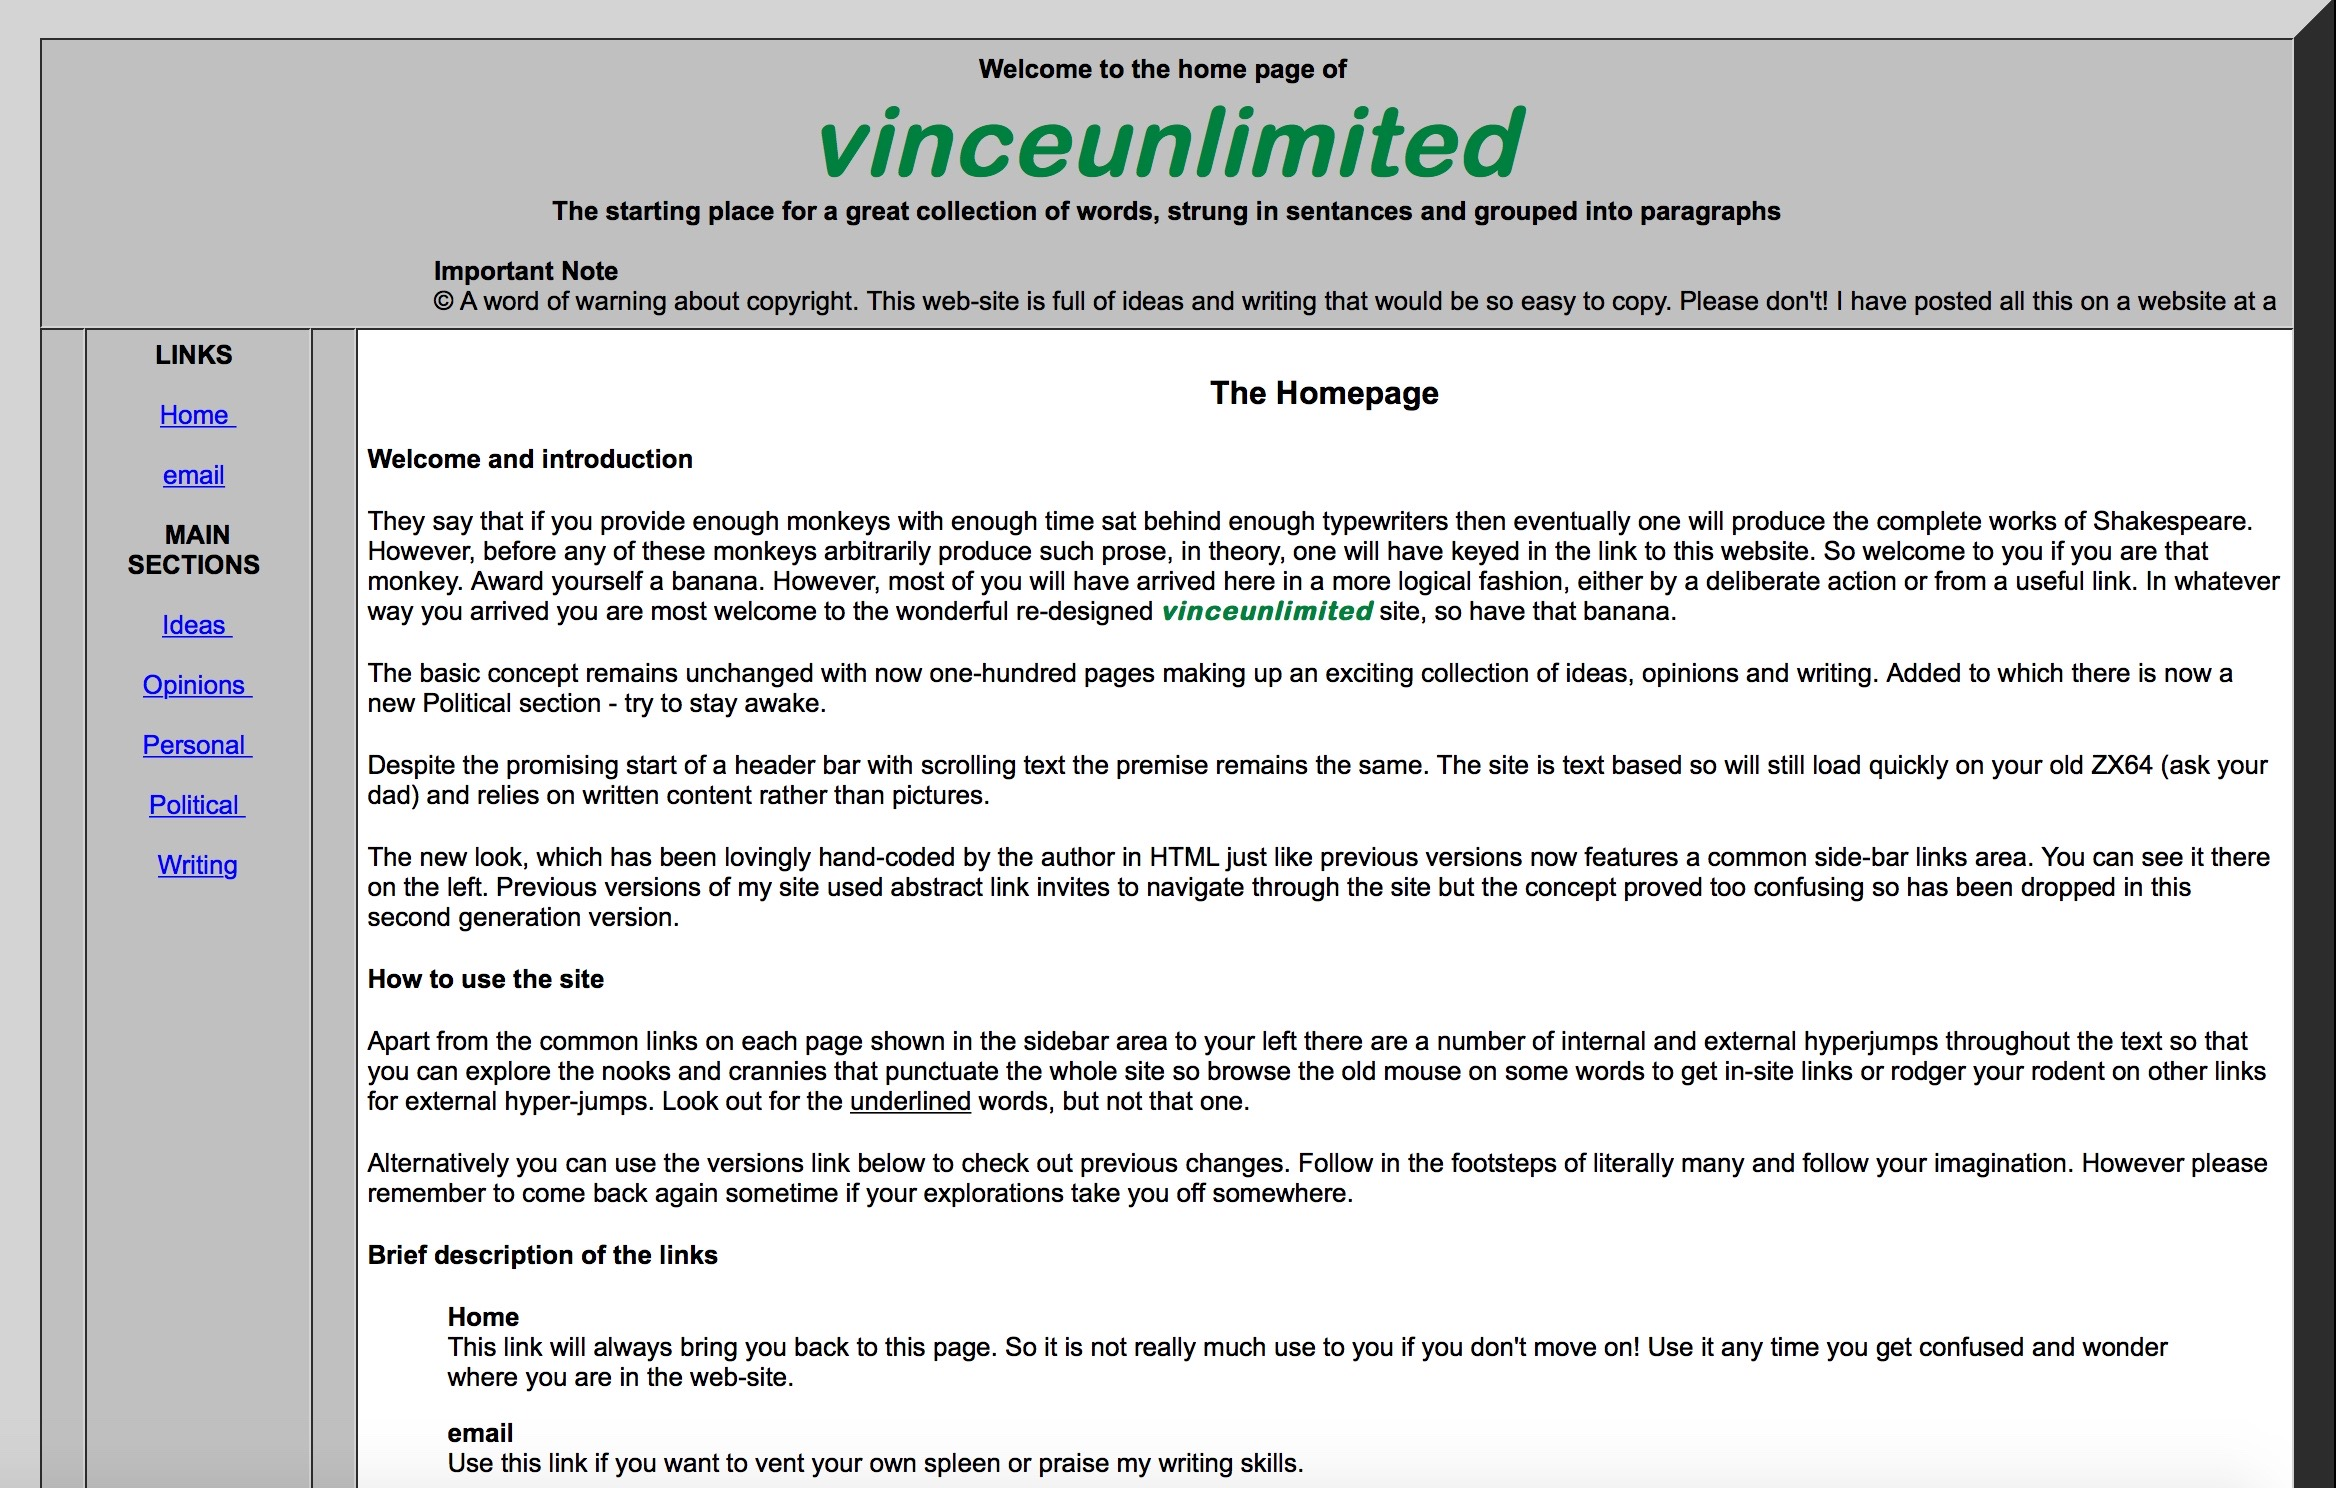 Screenshot of the Home page of vinceunlimited.co.uk version 2